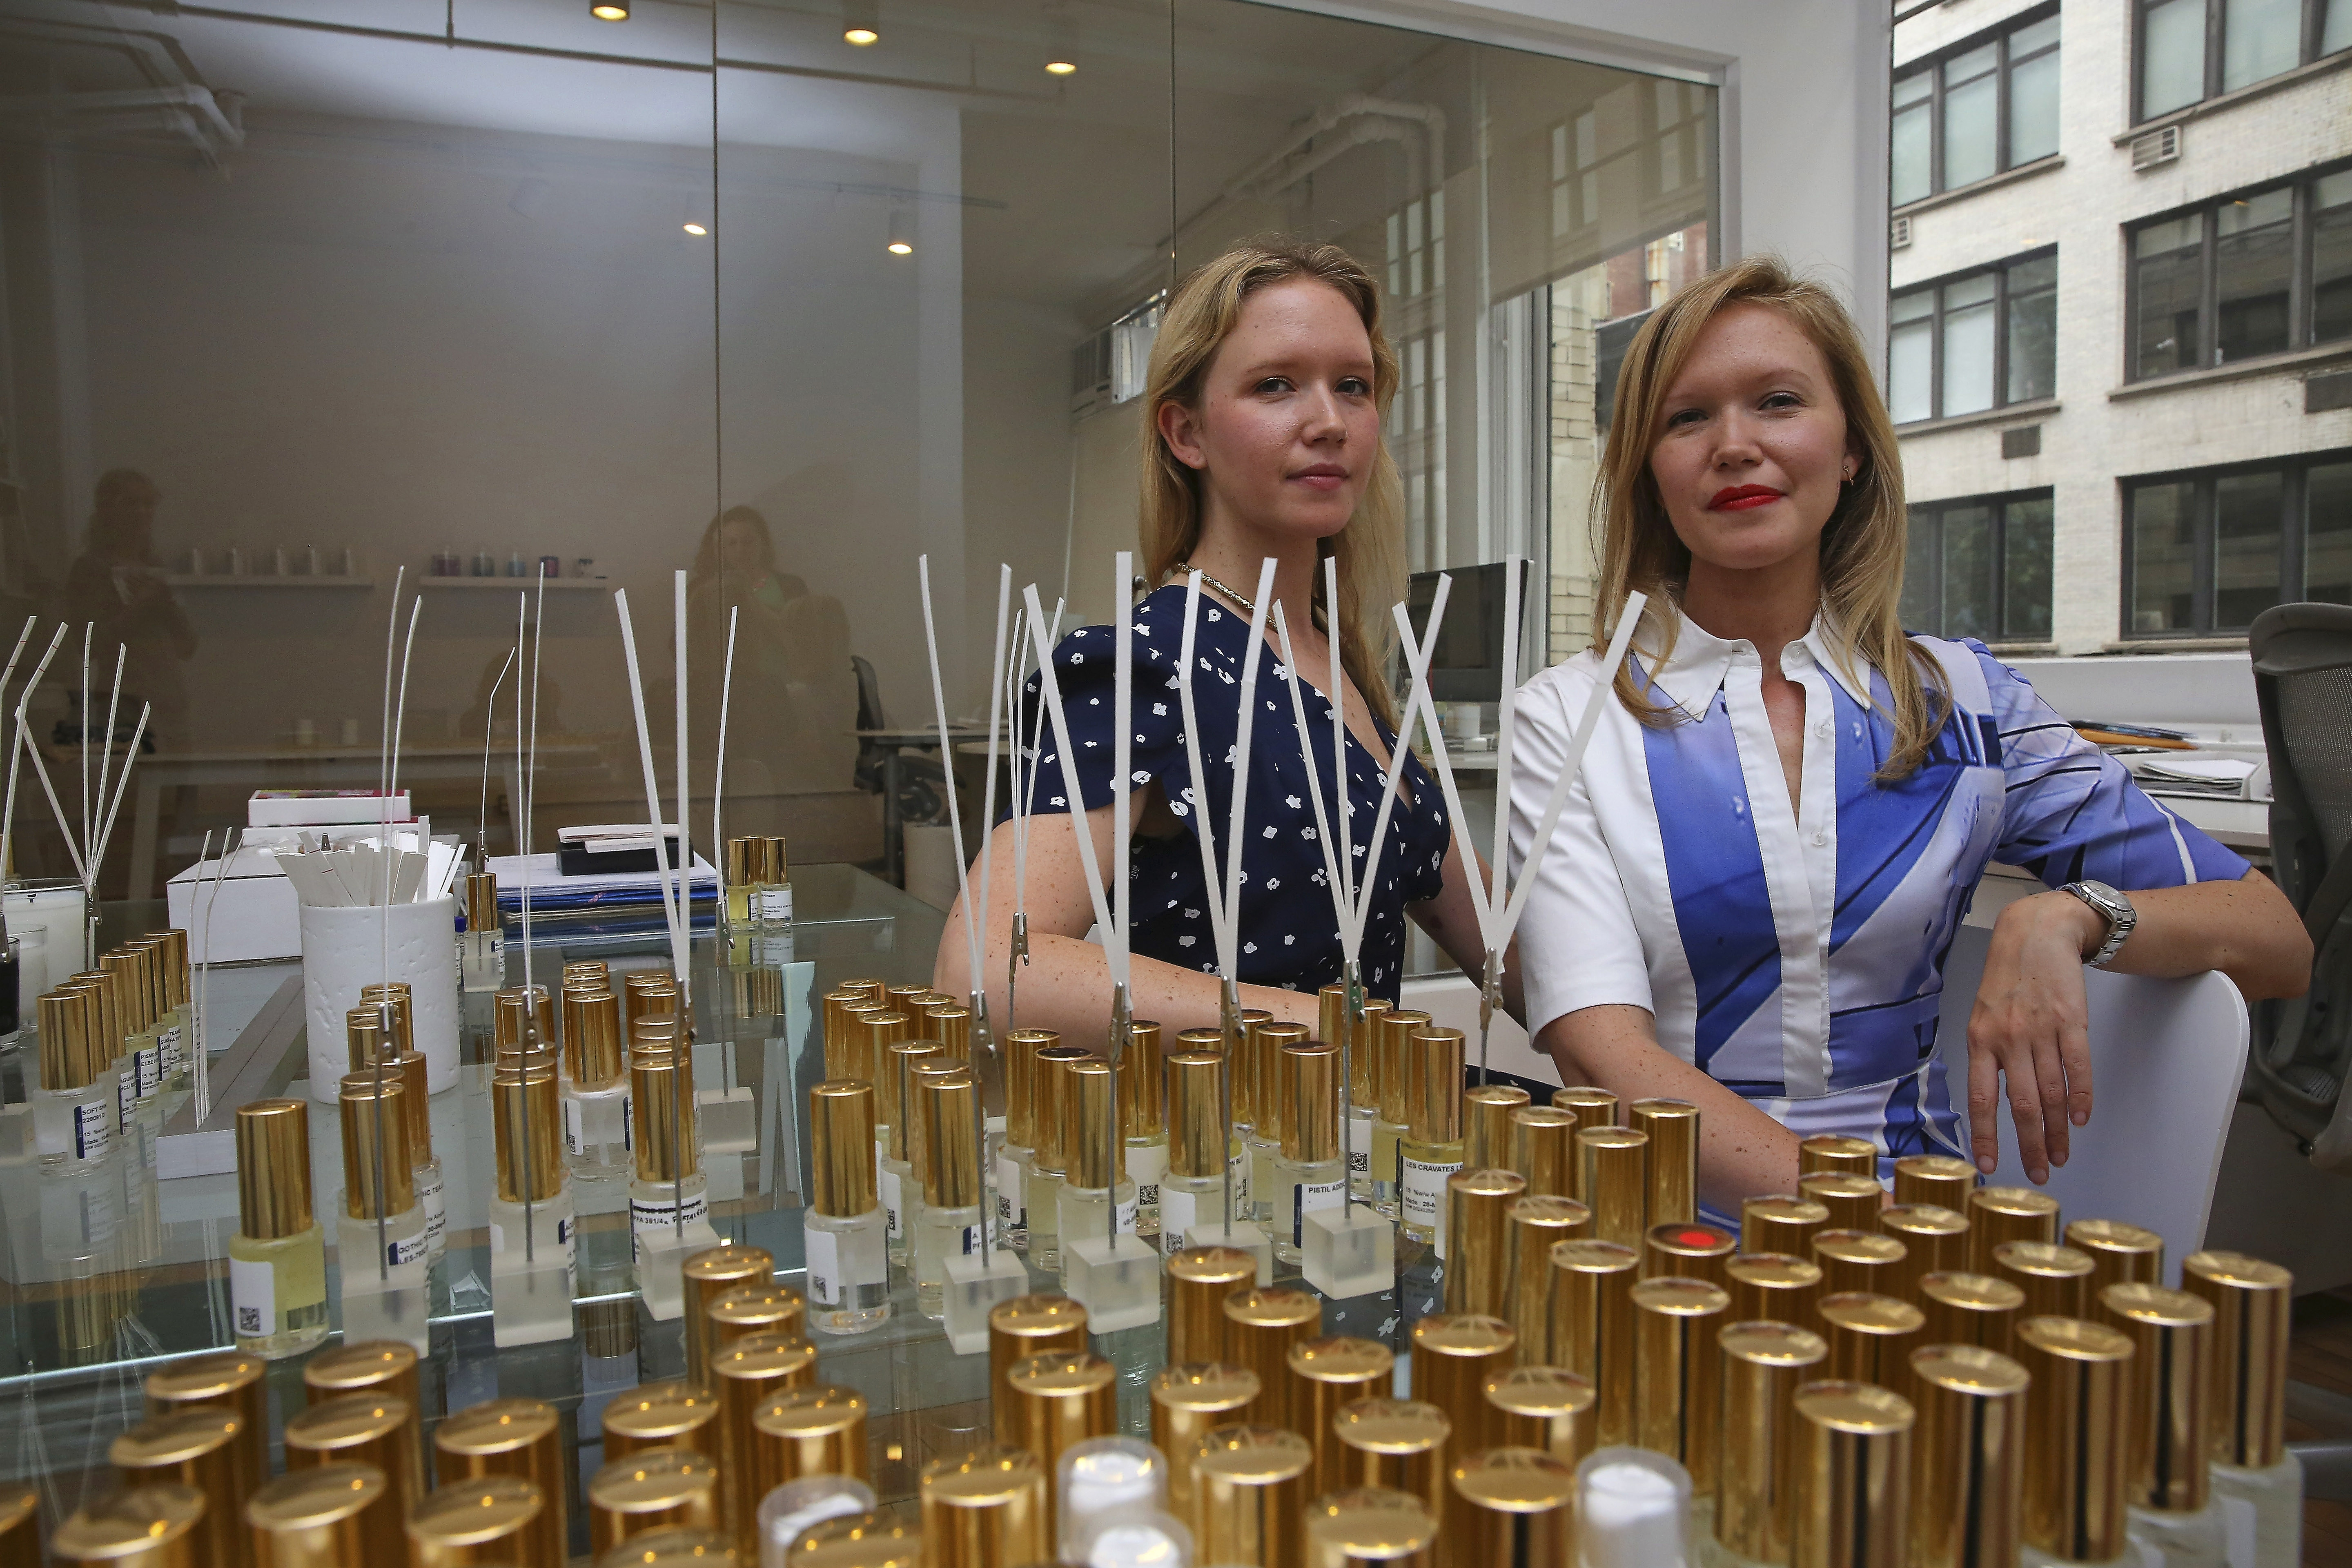 Sisters Dawn, left, and Samantha Goldworm at their offices in New York, June 10, 2014. The Goldworm's run an þÄúolfactive brandingþÄù company, one of many companies around the country offering scent technologies in the trend of well-designed interiors complete only with an interesting scent. (Nicole Bengiveno/The New York Times)